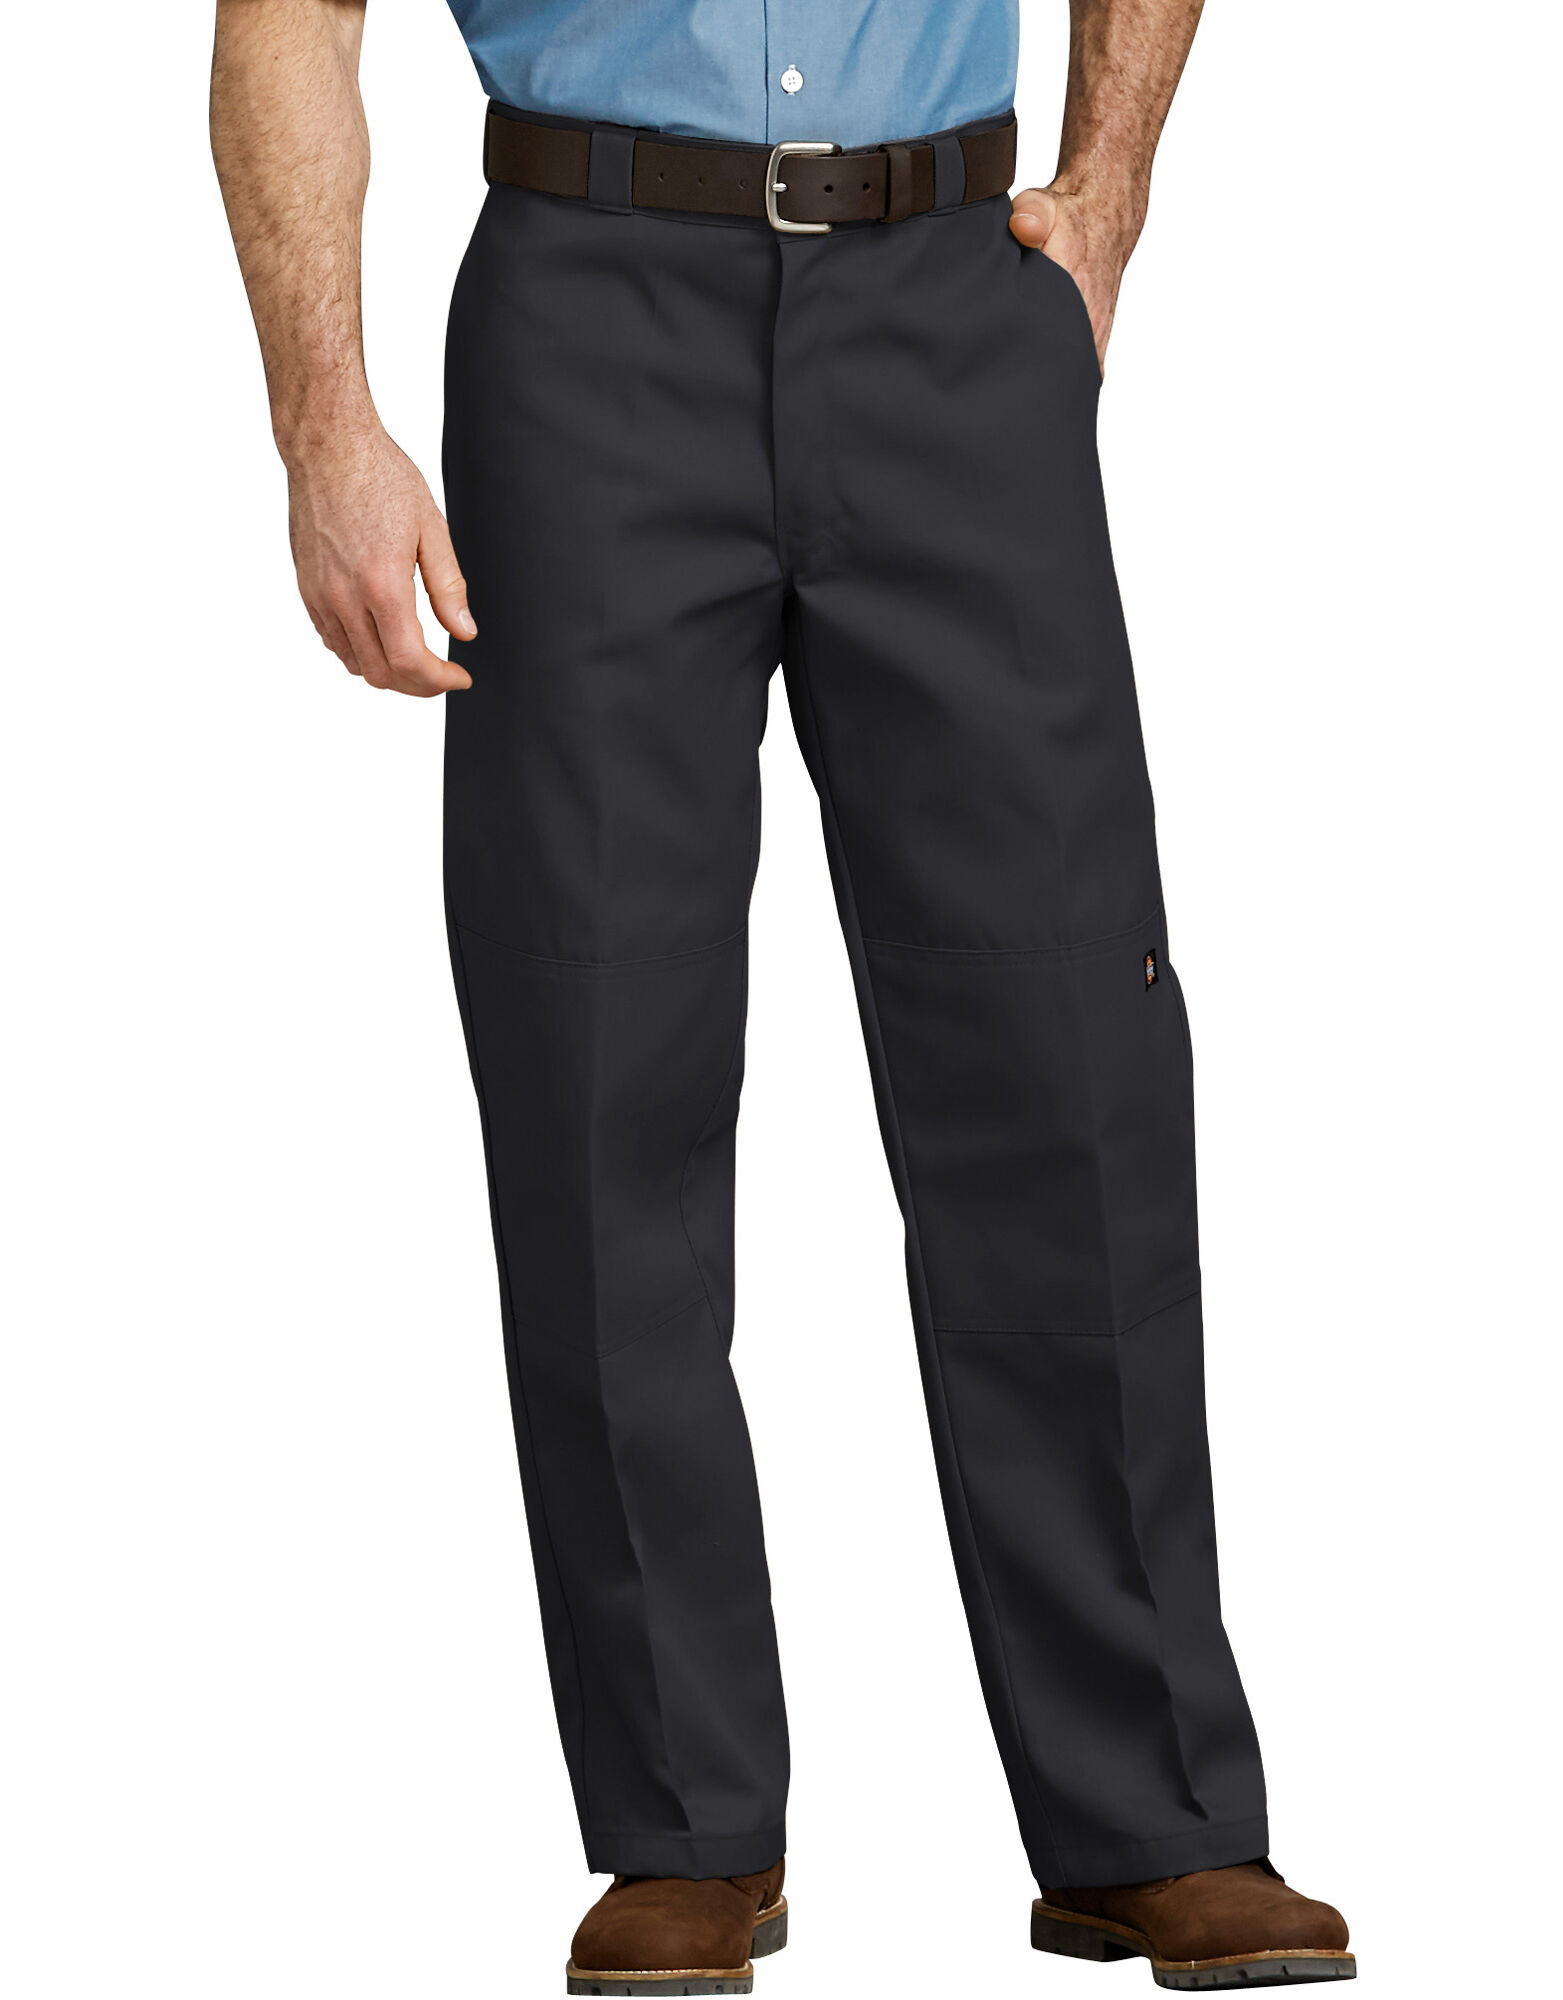 Men&39s Big &amp Tall Pants | Uniform &amp Dress Pants | Dickies